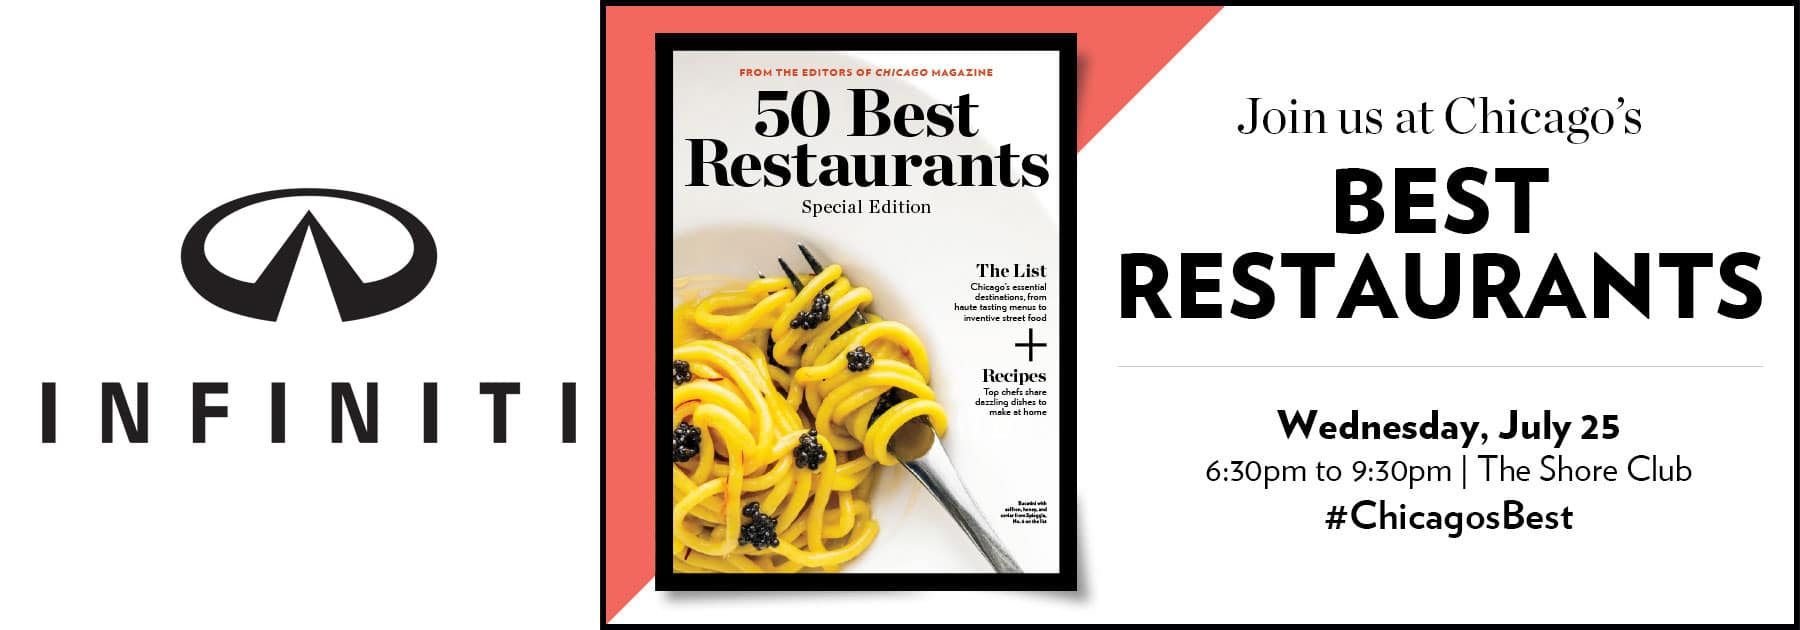 Chicago Magazine 50 Best Restaurants Event